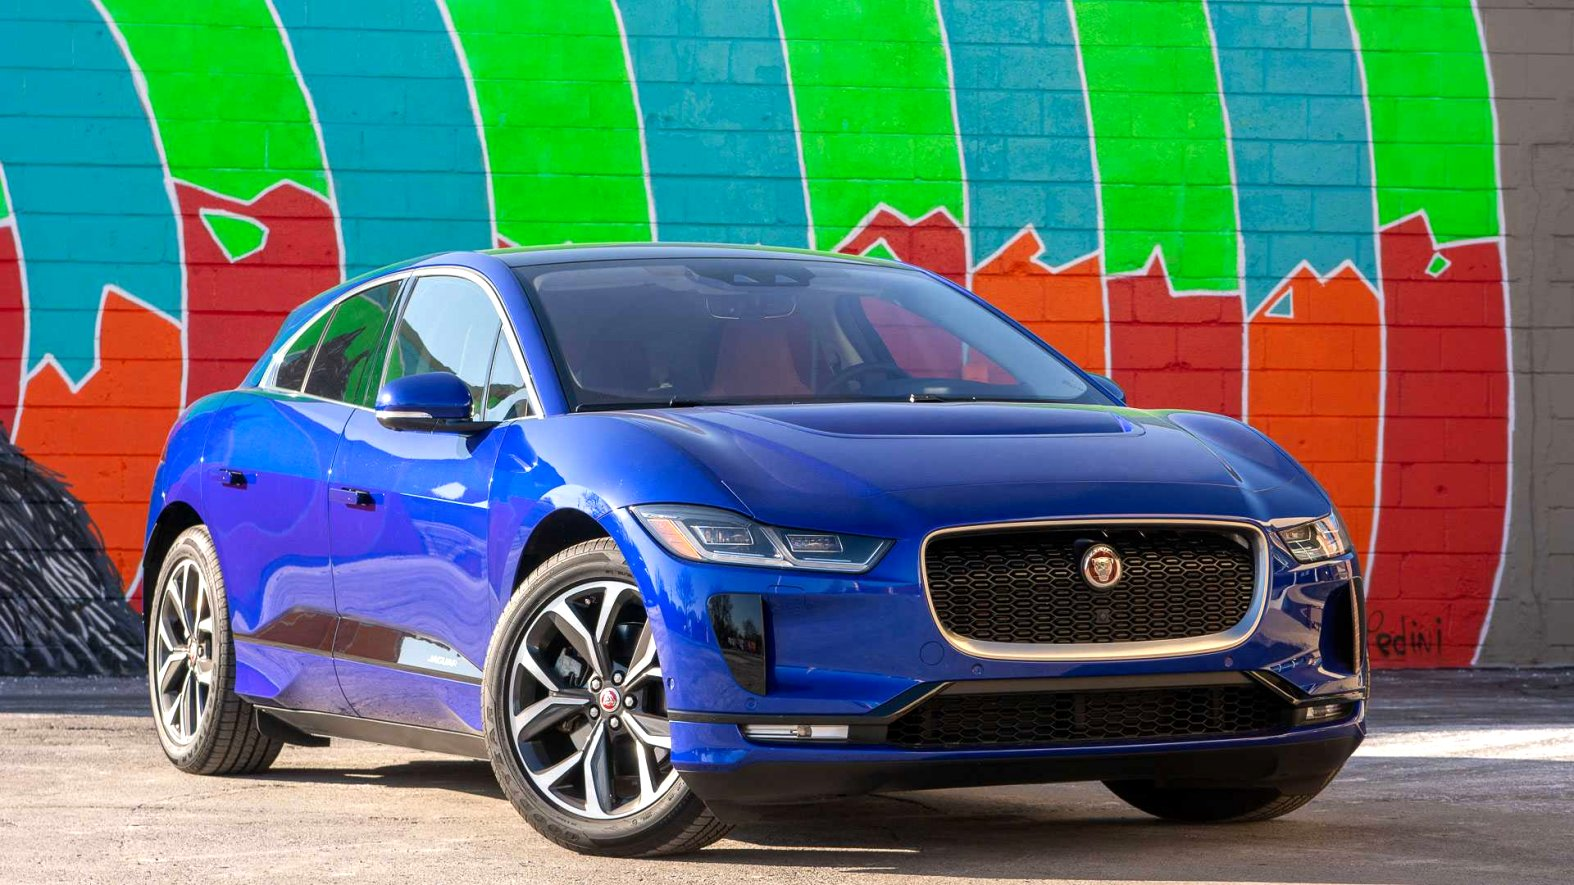 jaguar i pace review 2020 Ratings